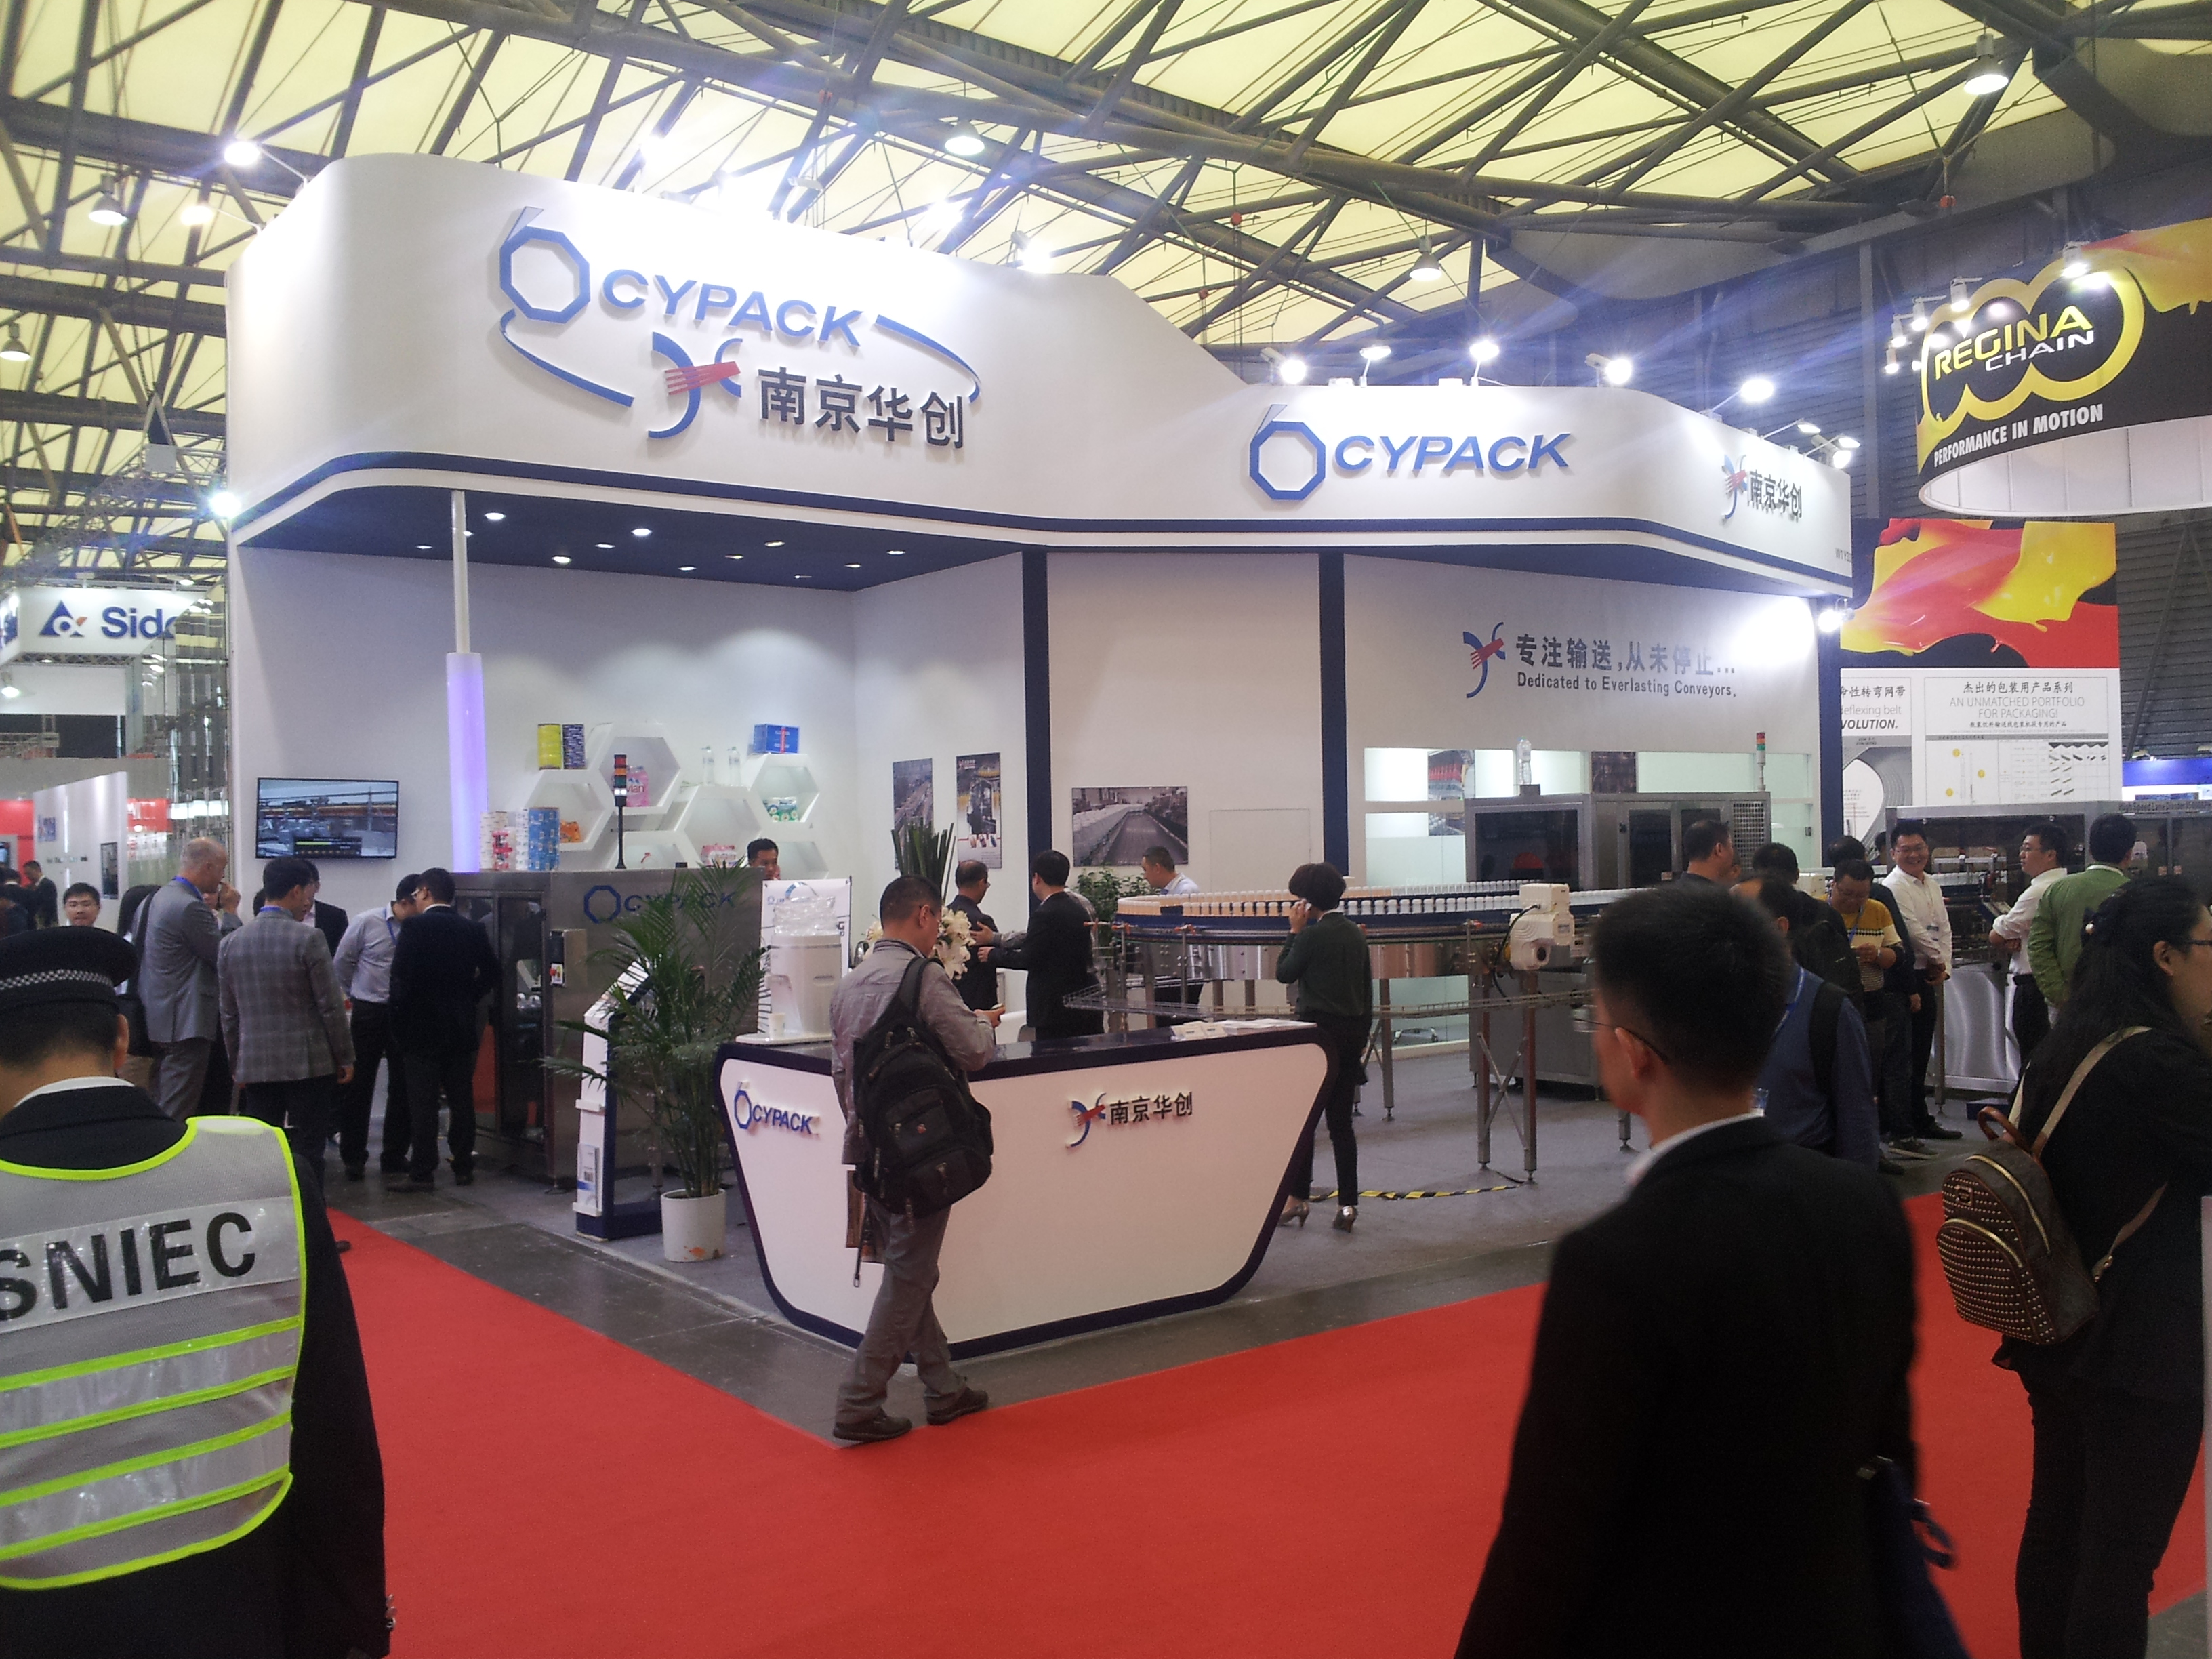 shanghai new international expo centre for Check out china international irrigation show shanghai new international expo centre dates location schedule registration agenda reviews exhibitor list a 3 days trade show, china international irrigation show is going to be held in shanghai, china from 07 mar 2018 to 09 mar 2018 focusing on agriculture & forestry product categories.